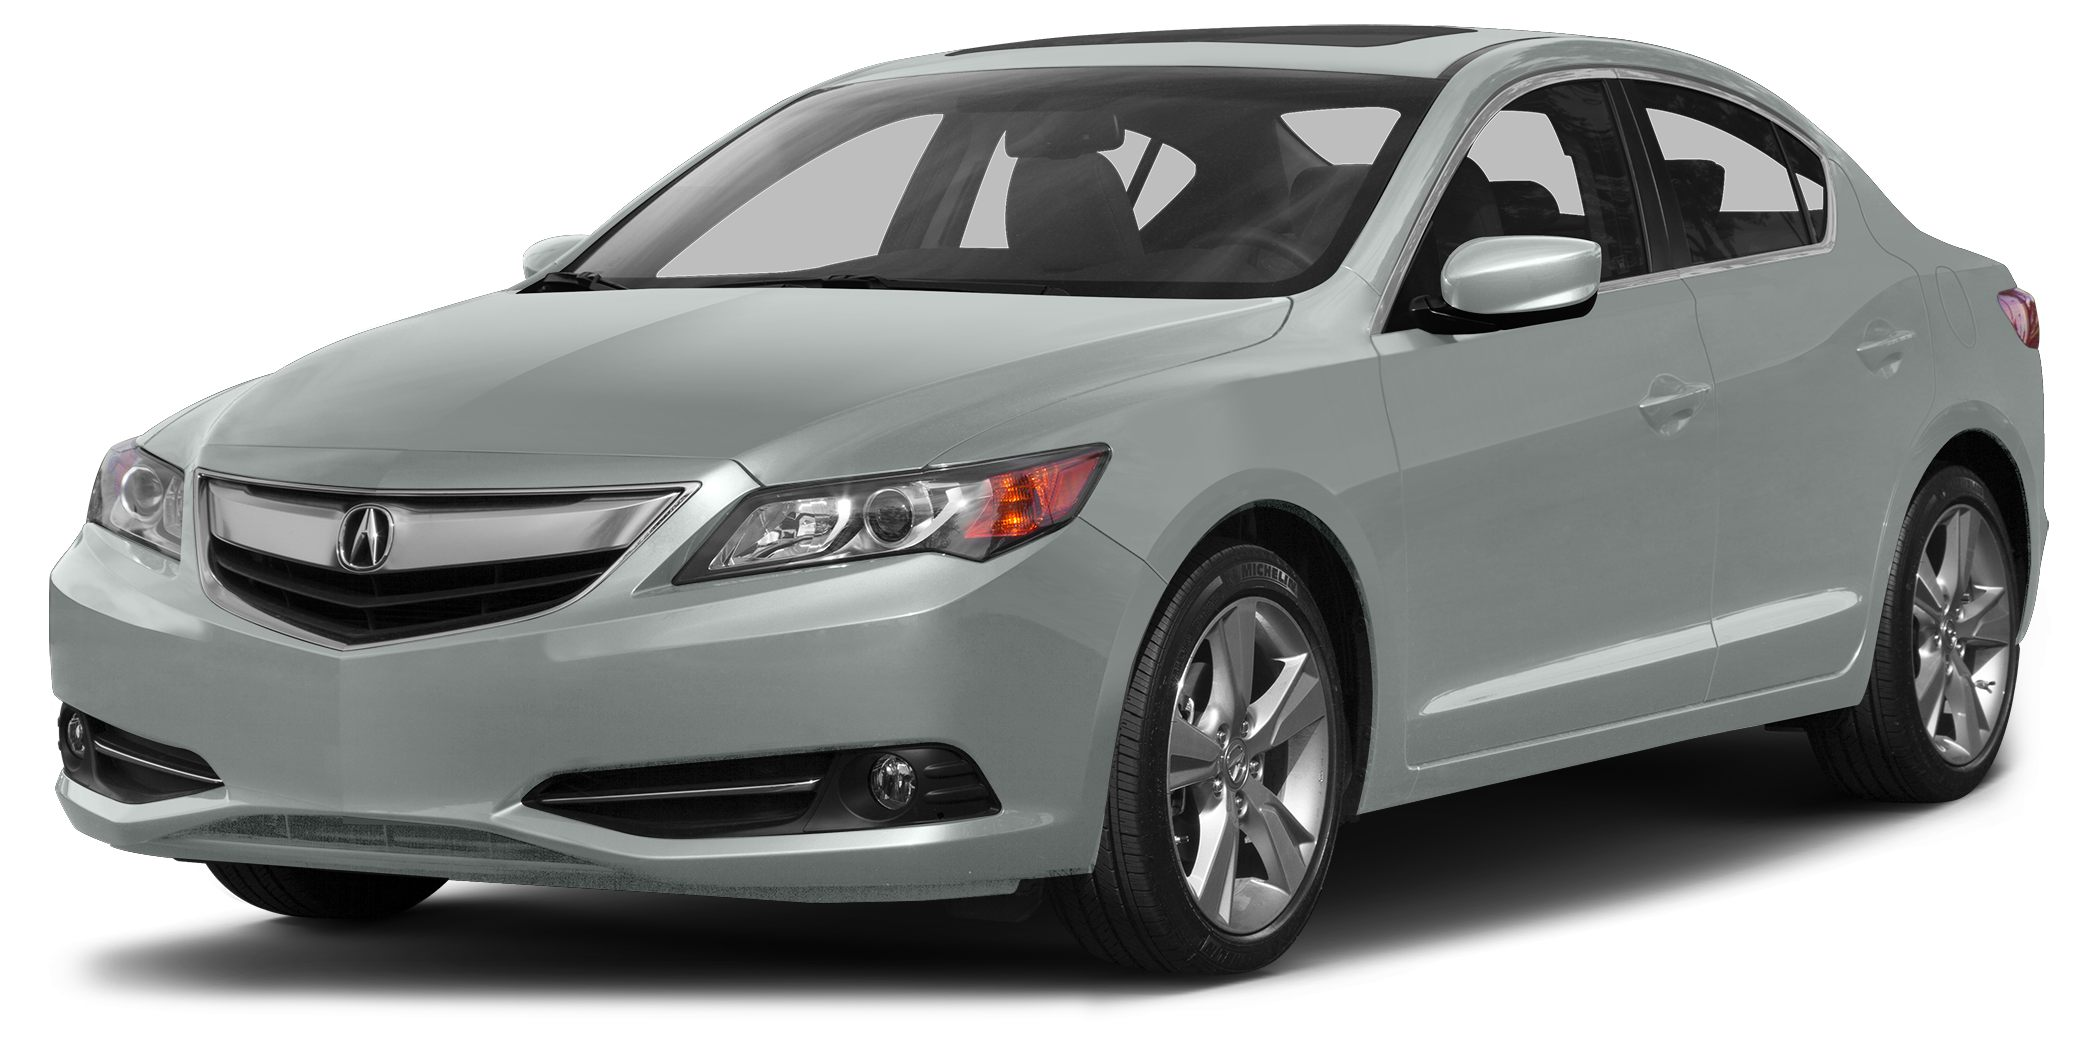 2013 Acura ILX 20 This vehicle really shows it was cared for by the previous owner You should c